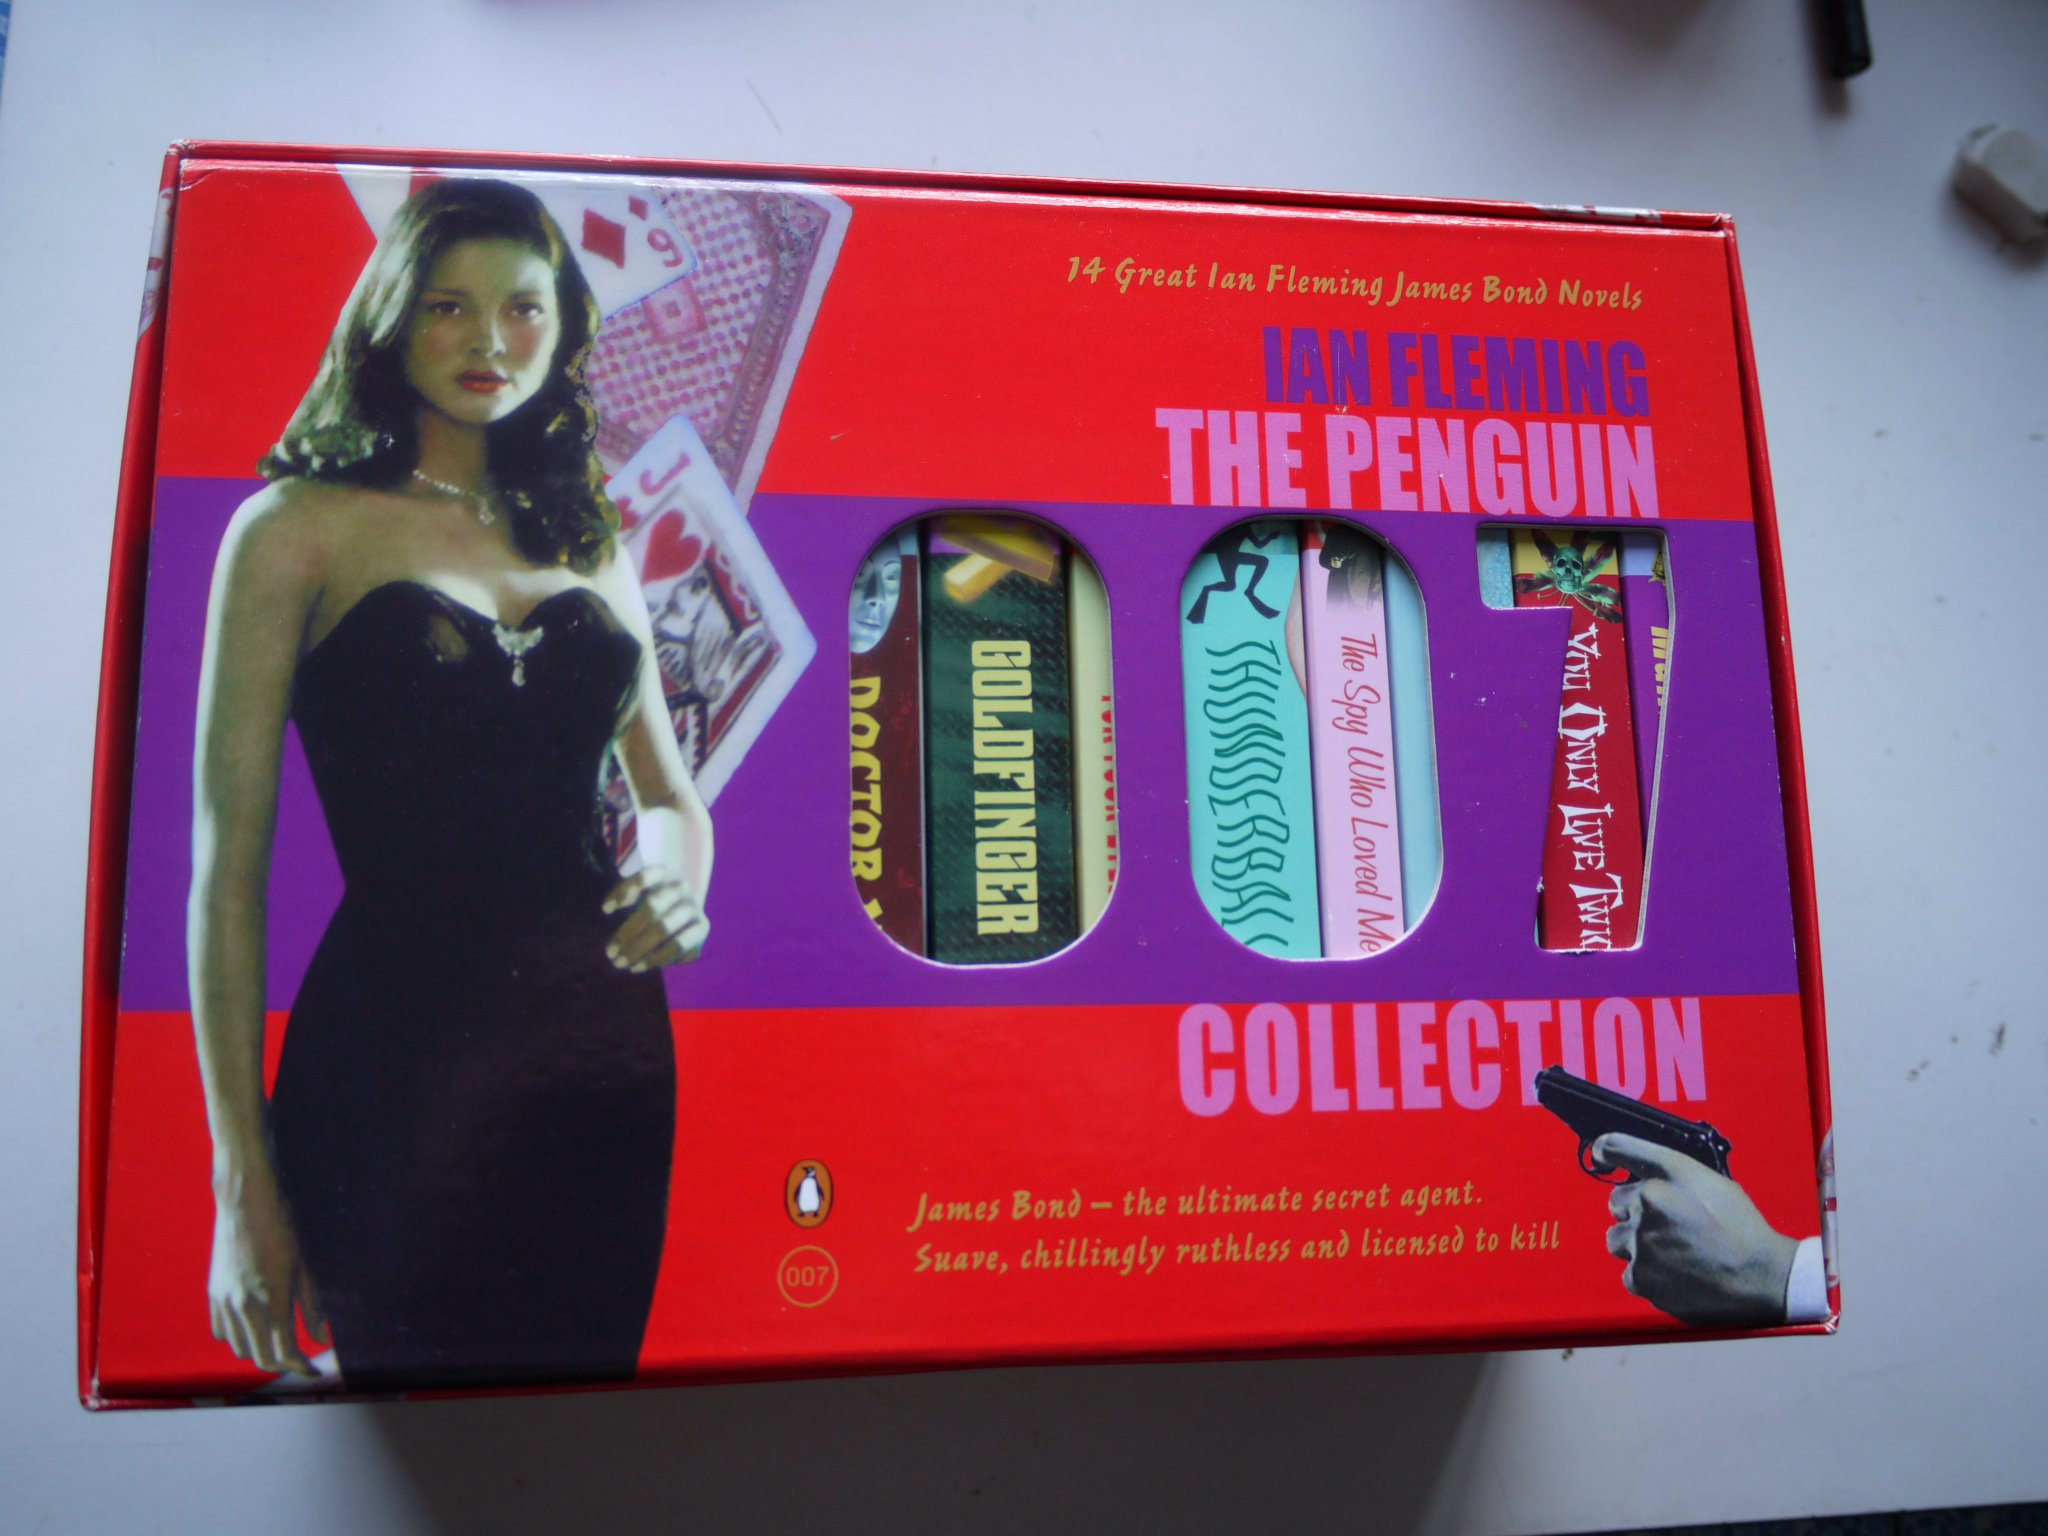 THE PENGUIN 007 COLLECTION all 14 JAMES BOND books in a nice box:  Amazon.co.uk: IAN FLEMING: 9780140911497: Books